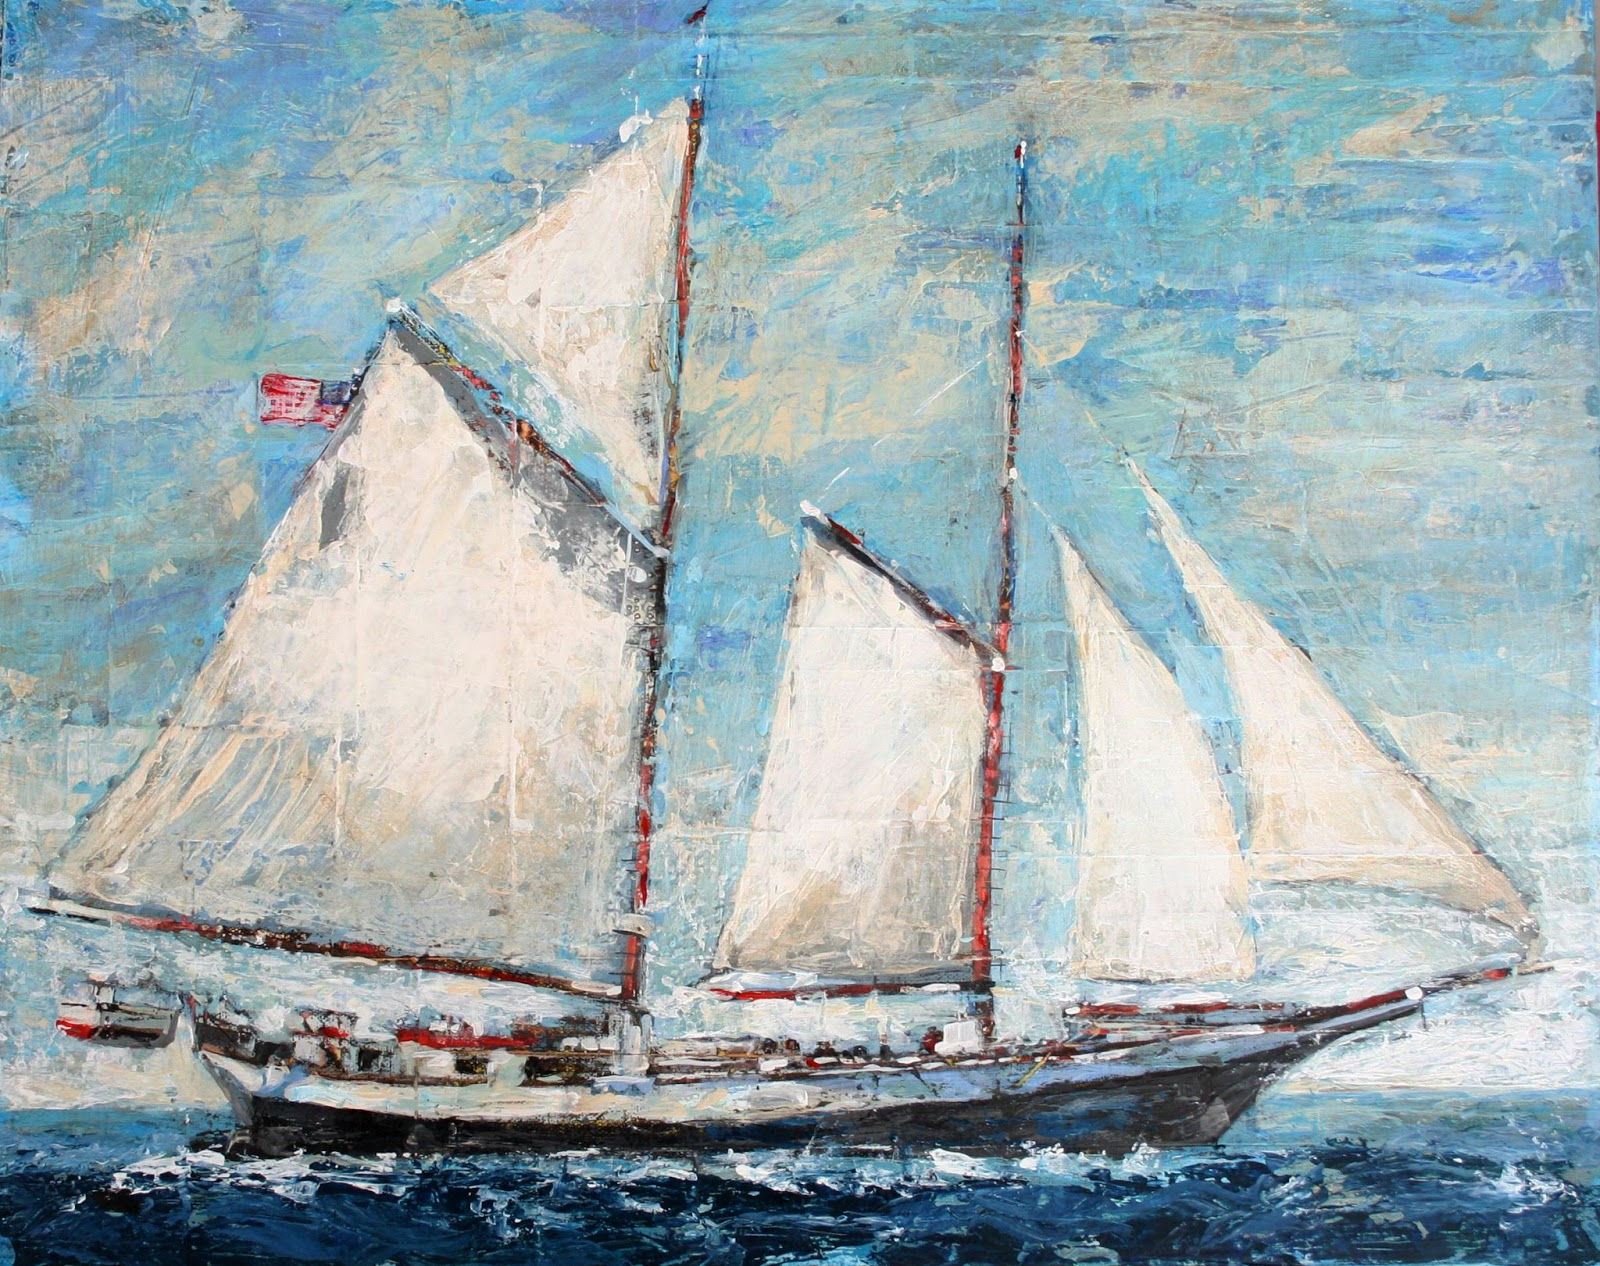 Thrill your walls now with a stunning Sailboats print from the world's largest art gallery. Choose from thousands of Sailboats artworks with the option to print on.